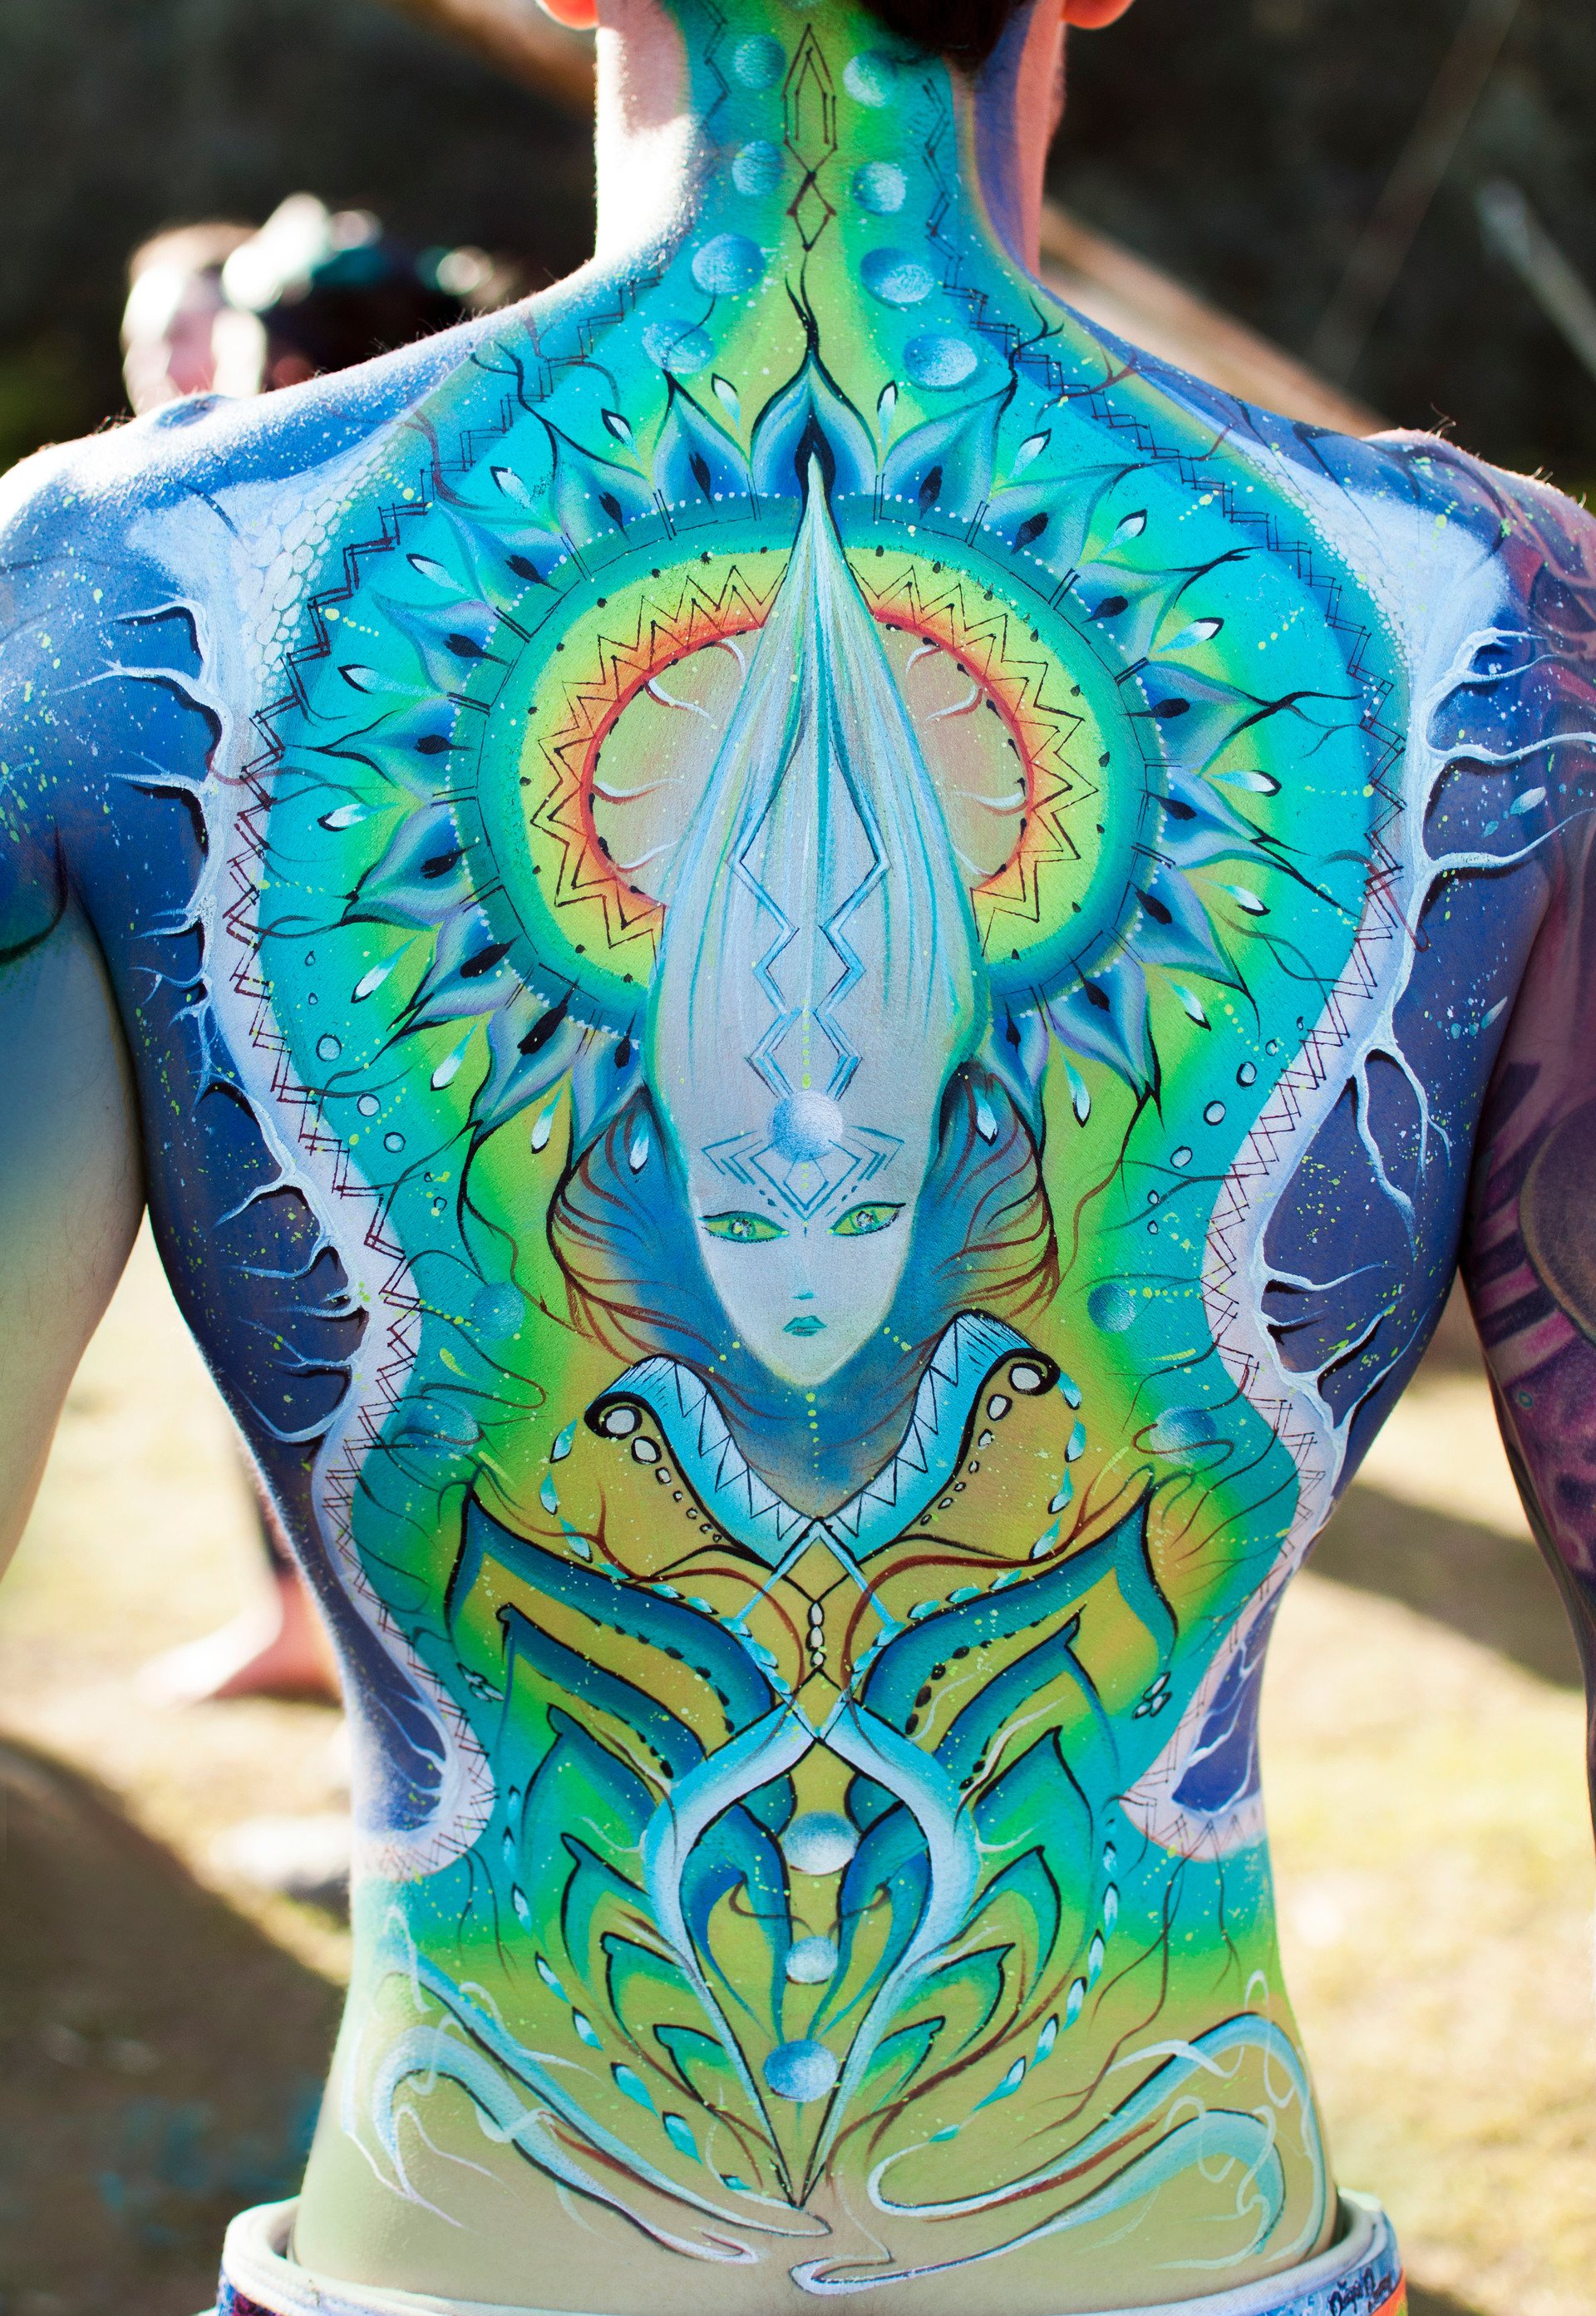 Body painting Melbourne, Body painting, live performance